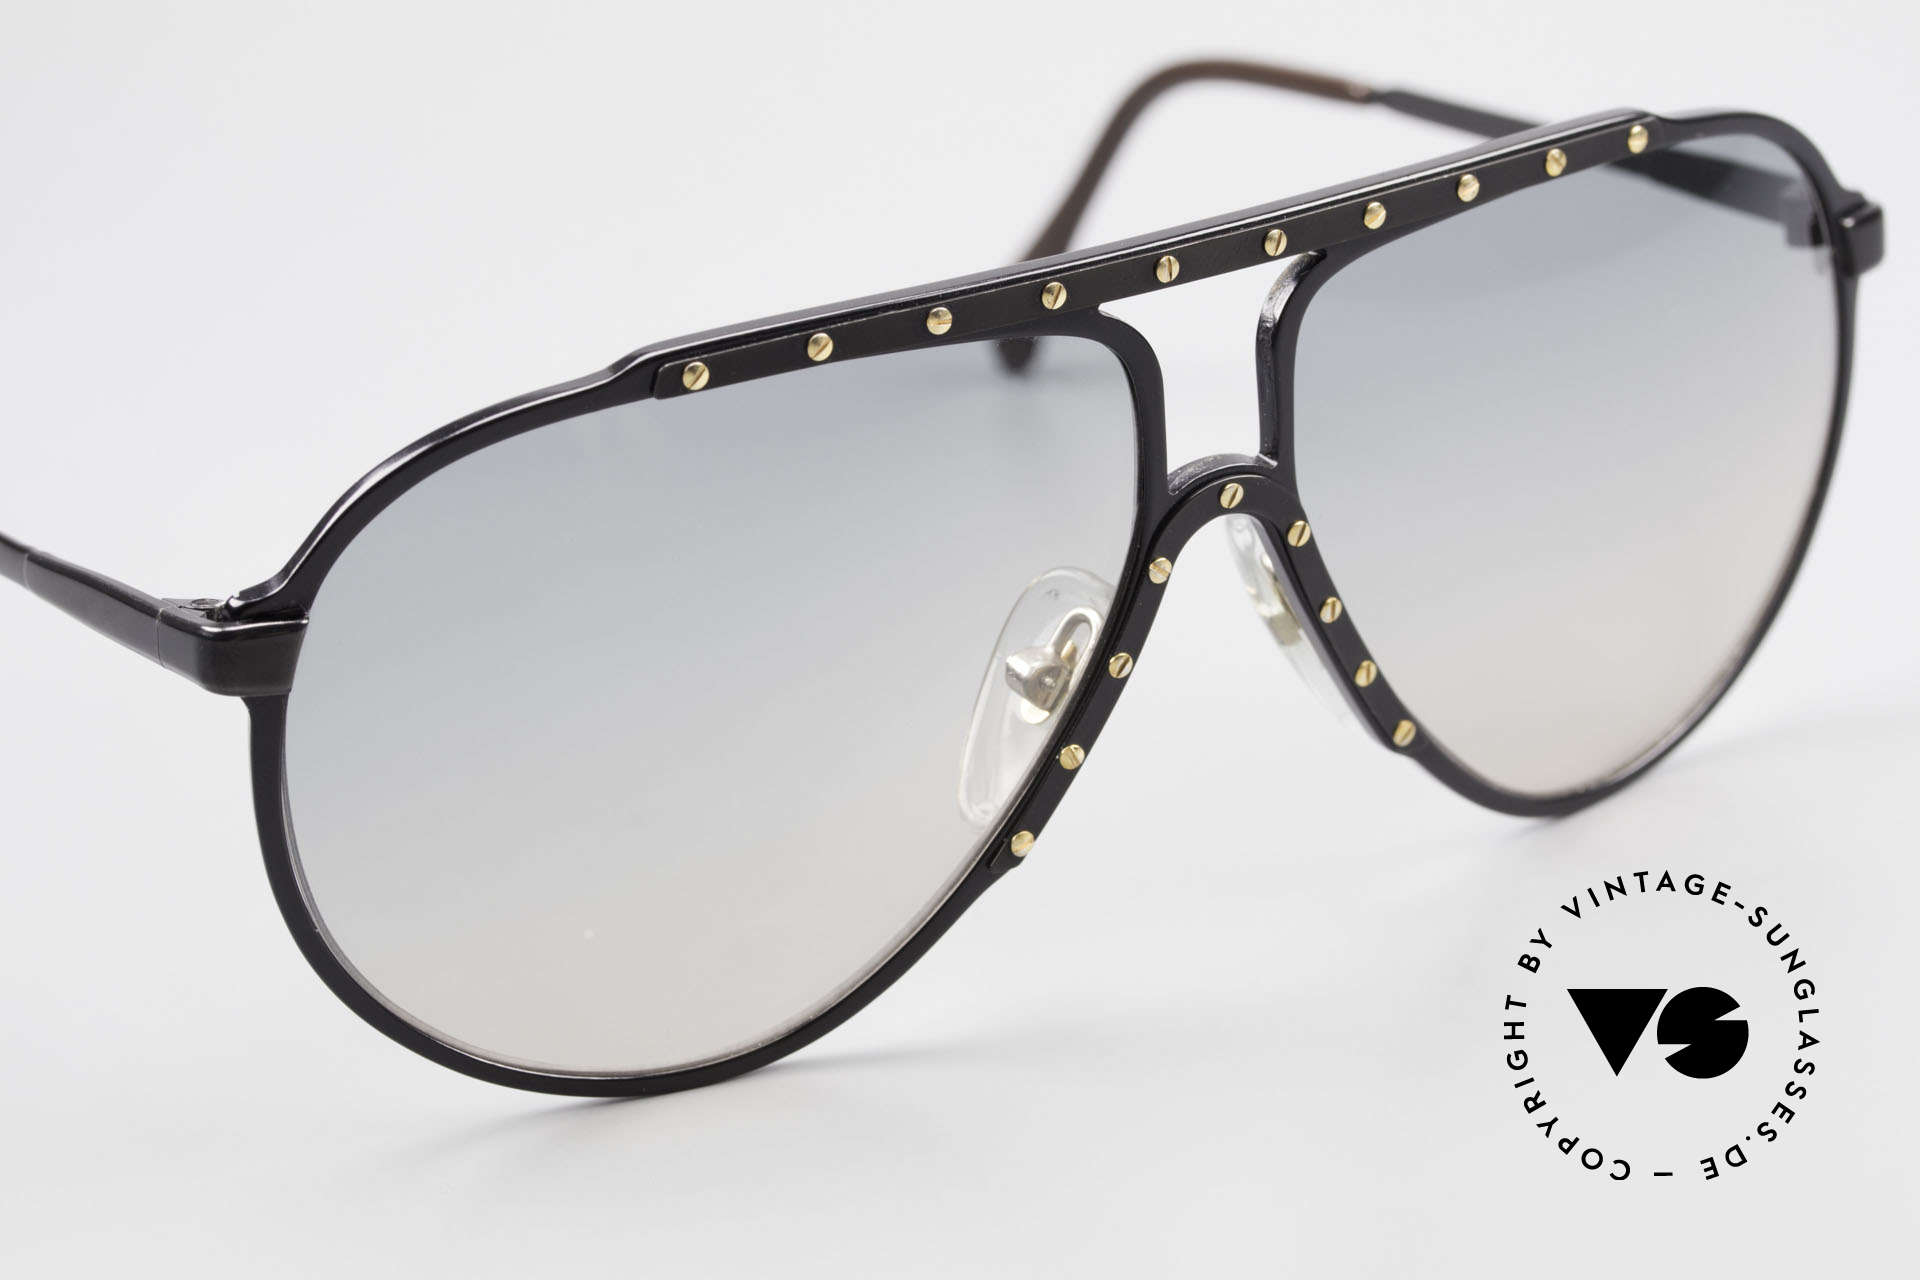 Alpina M1 Iconic Sunglasses of the 80's, NO RETRO sunglasses; the old ORIGINAL from 1987!, Made for Men and Women